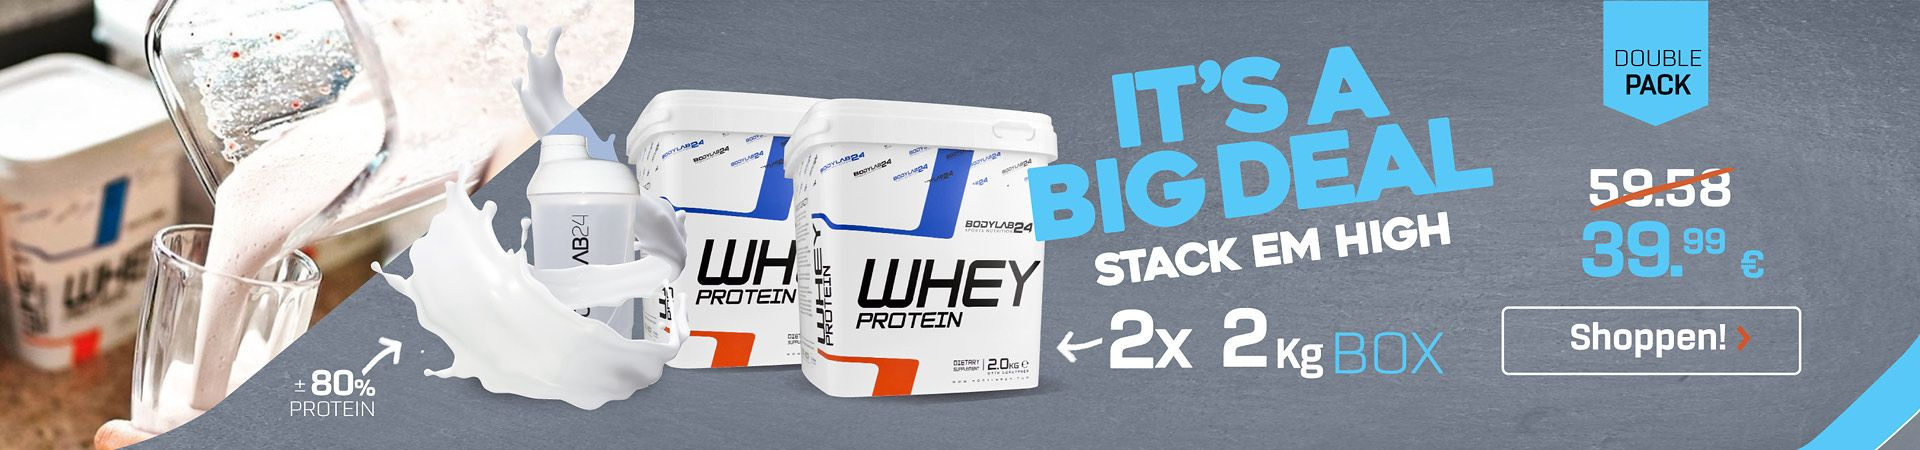 Doublepack Whey Protein - IT's a big DEAL